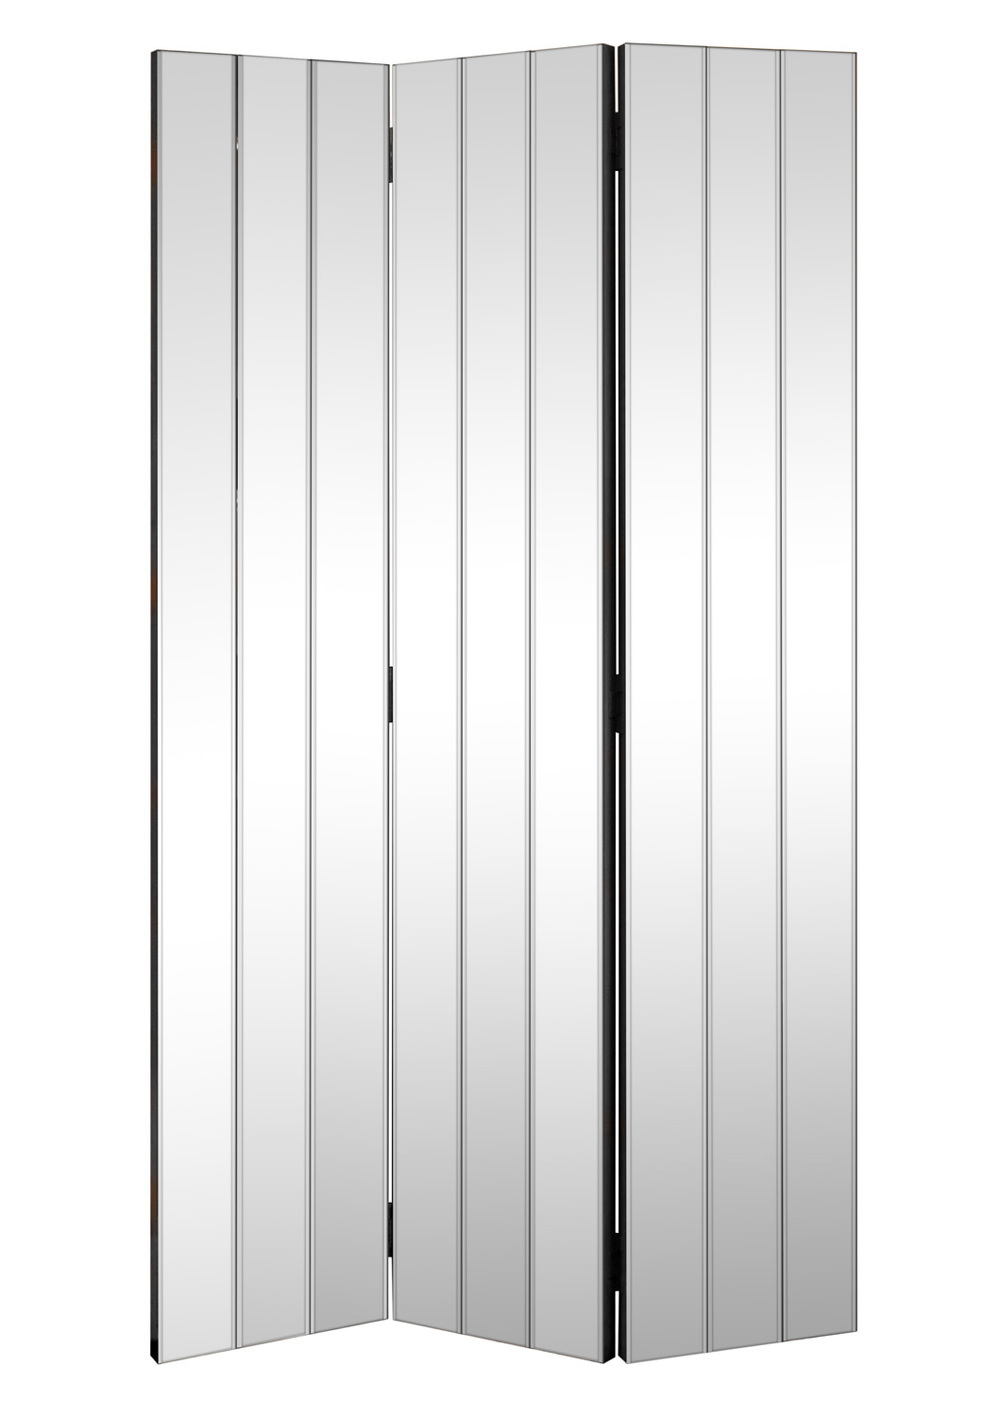 70's 55 3 panel mirrored screen13 hires.jpg